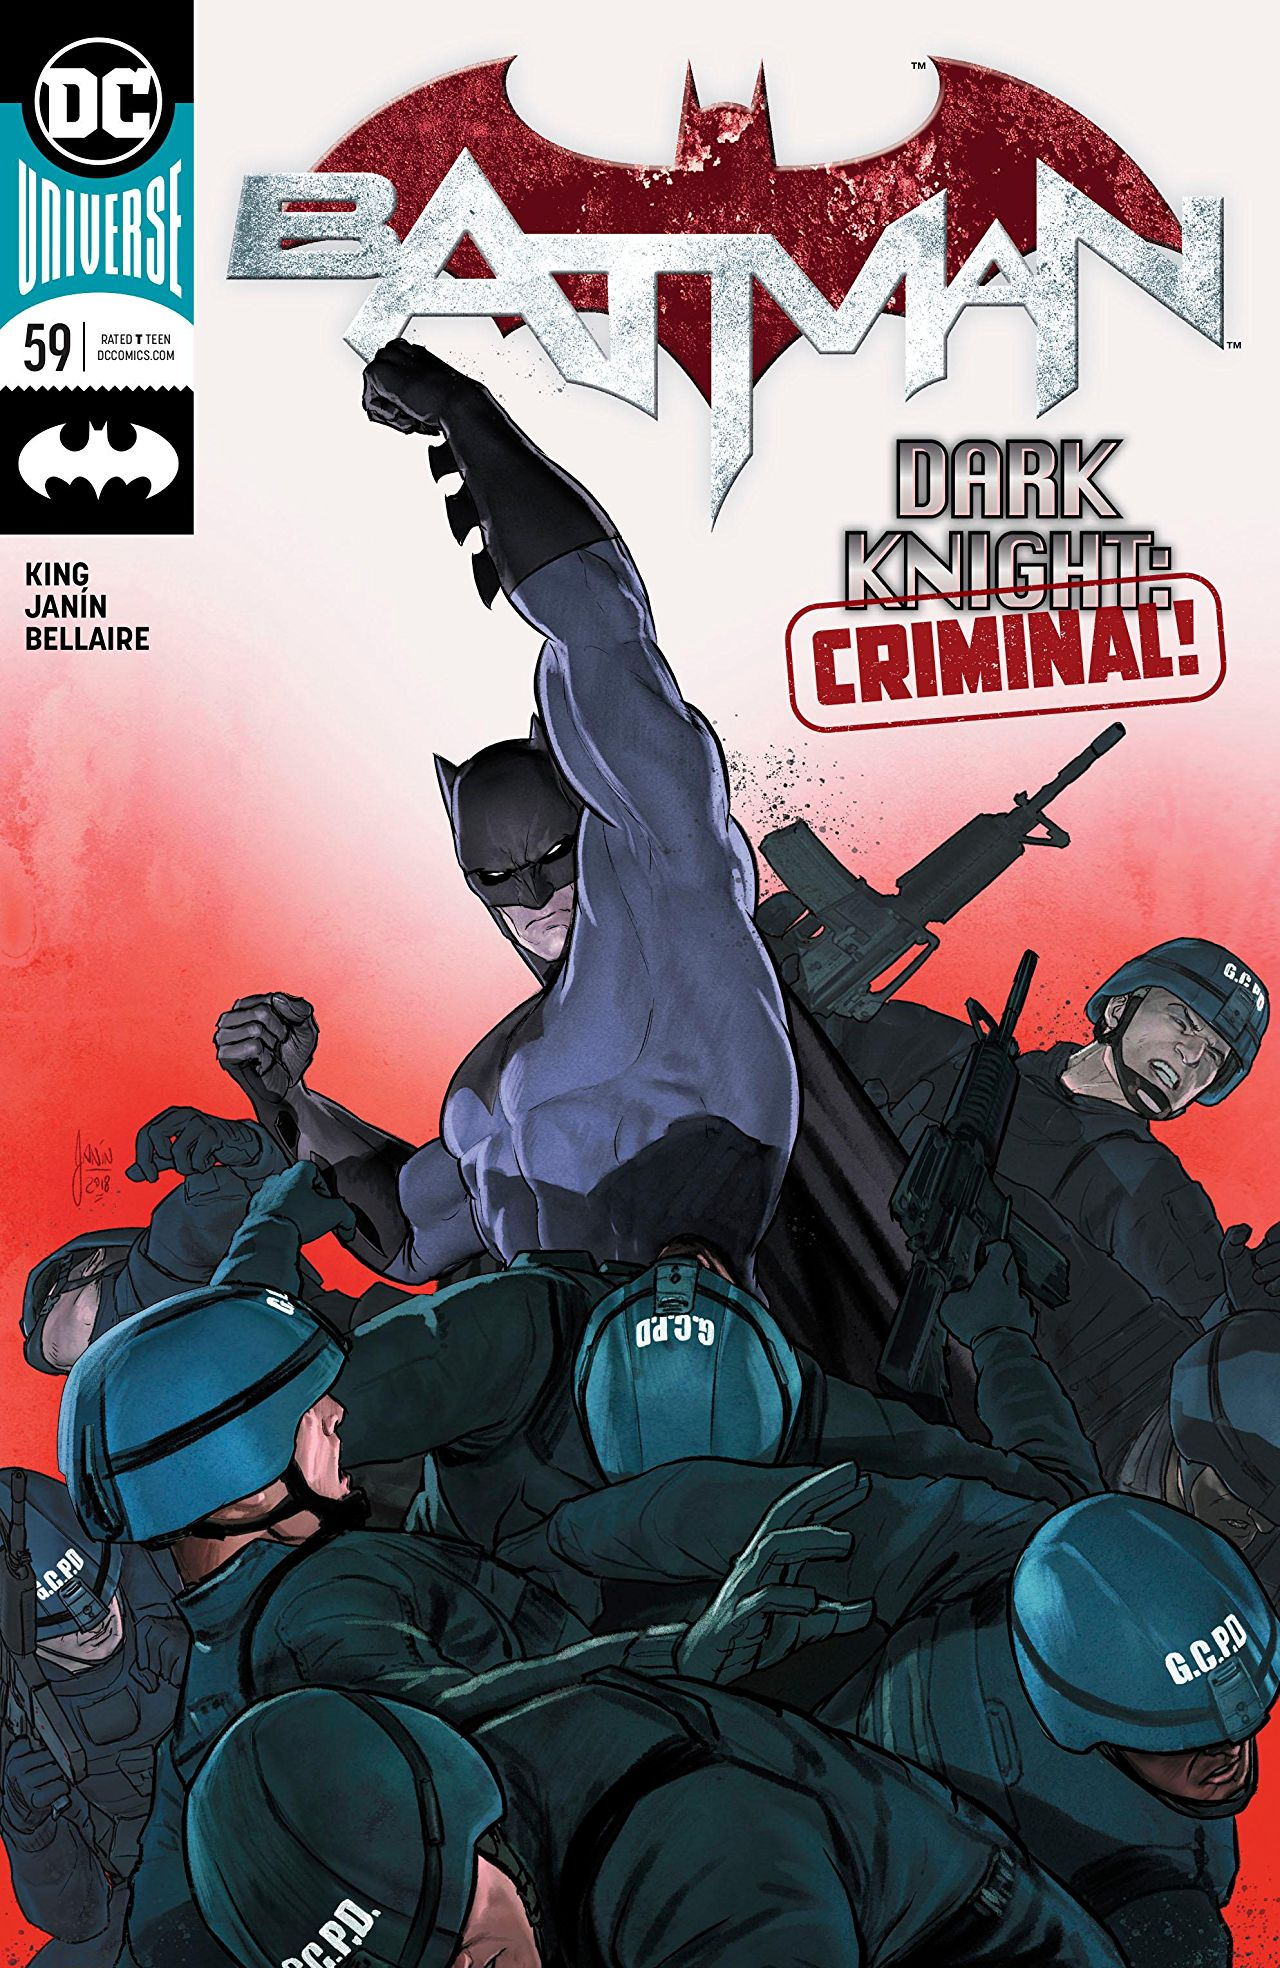 Batman #59 (DC Comics)